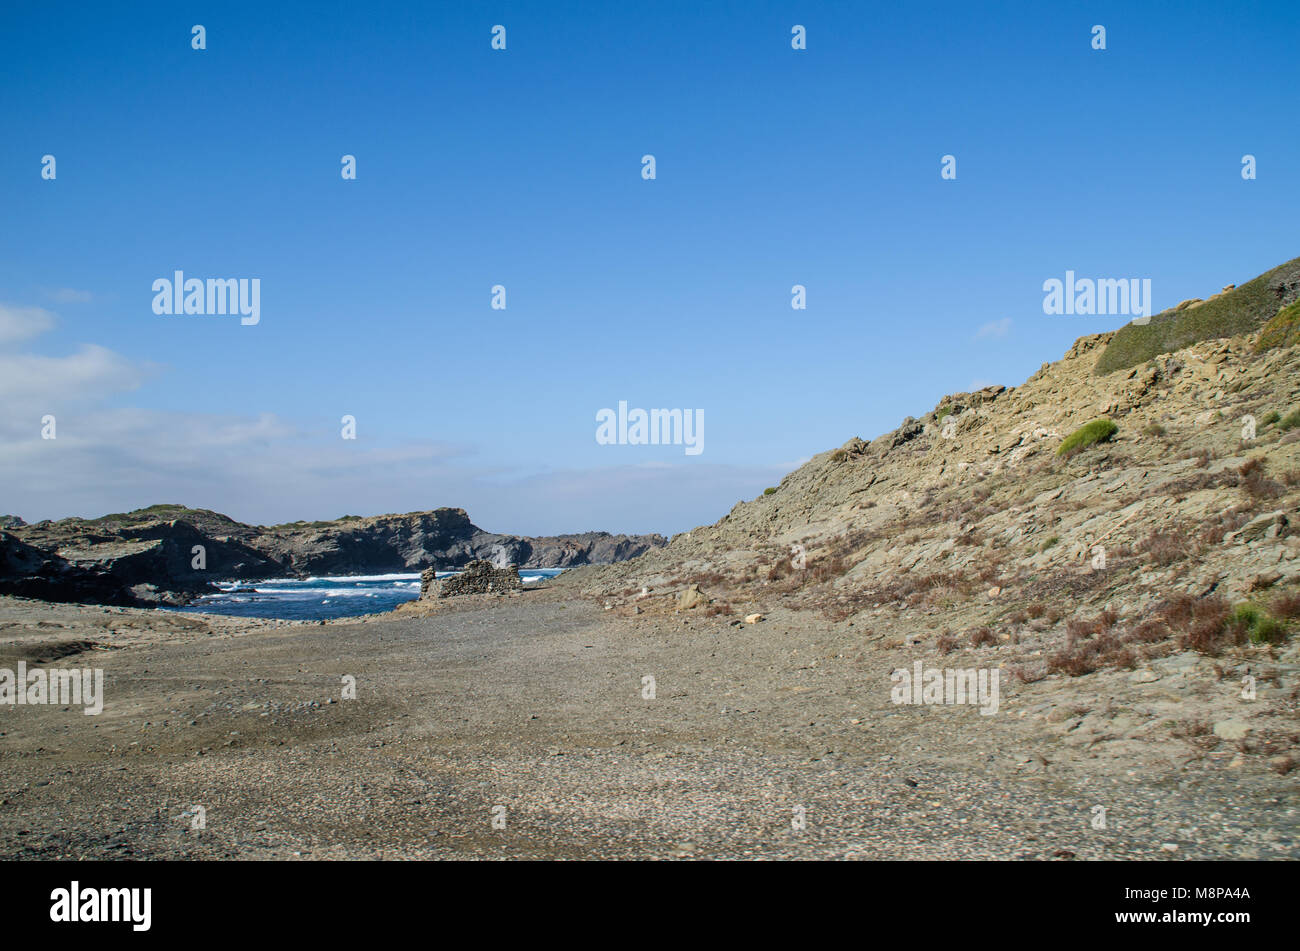 Landscape photography of one of the best known places in Menorca on the coast with a lighthouse. - Stock Image